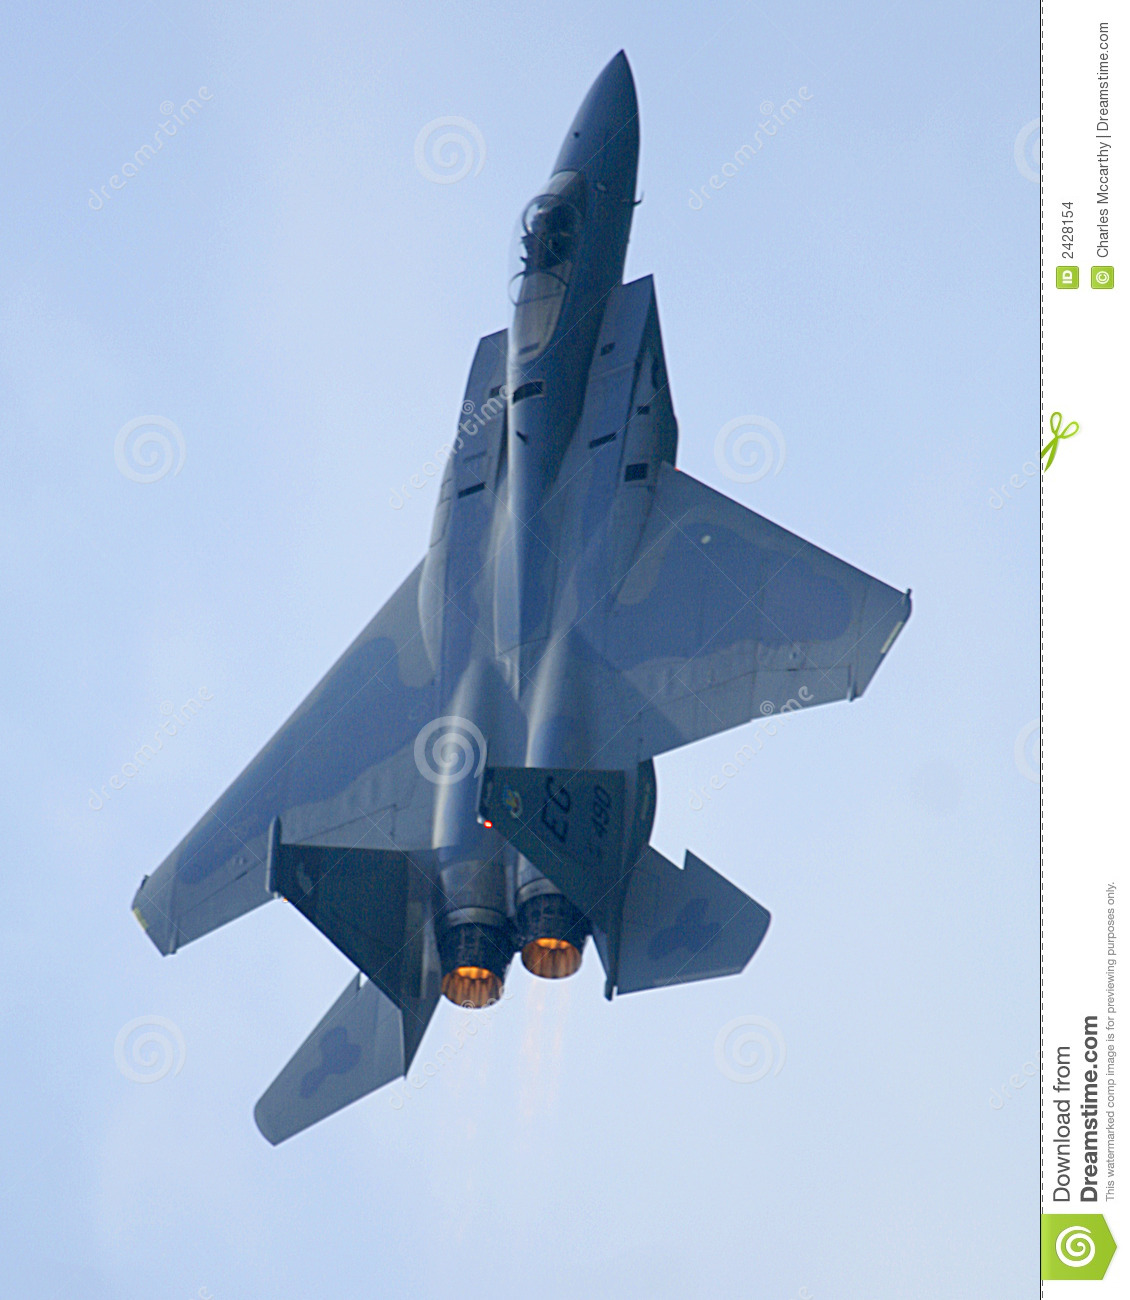 F15 Eagle Jet Afterburner Stock Images.